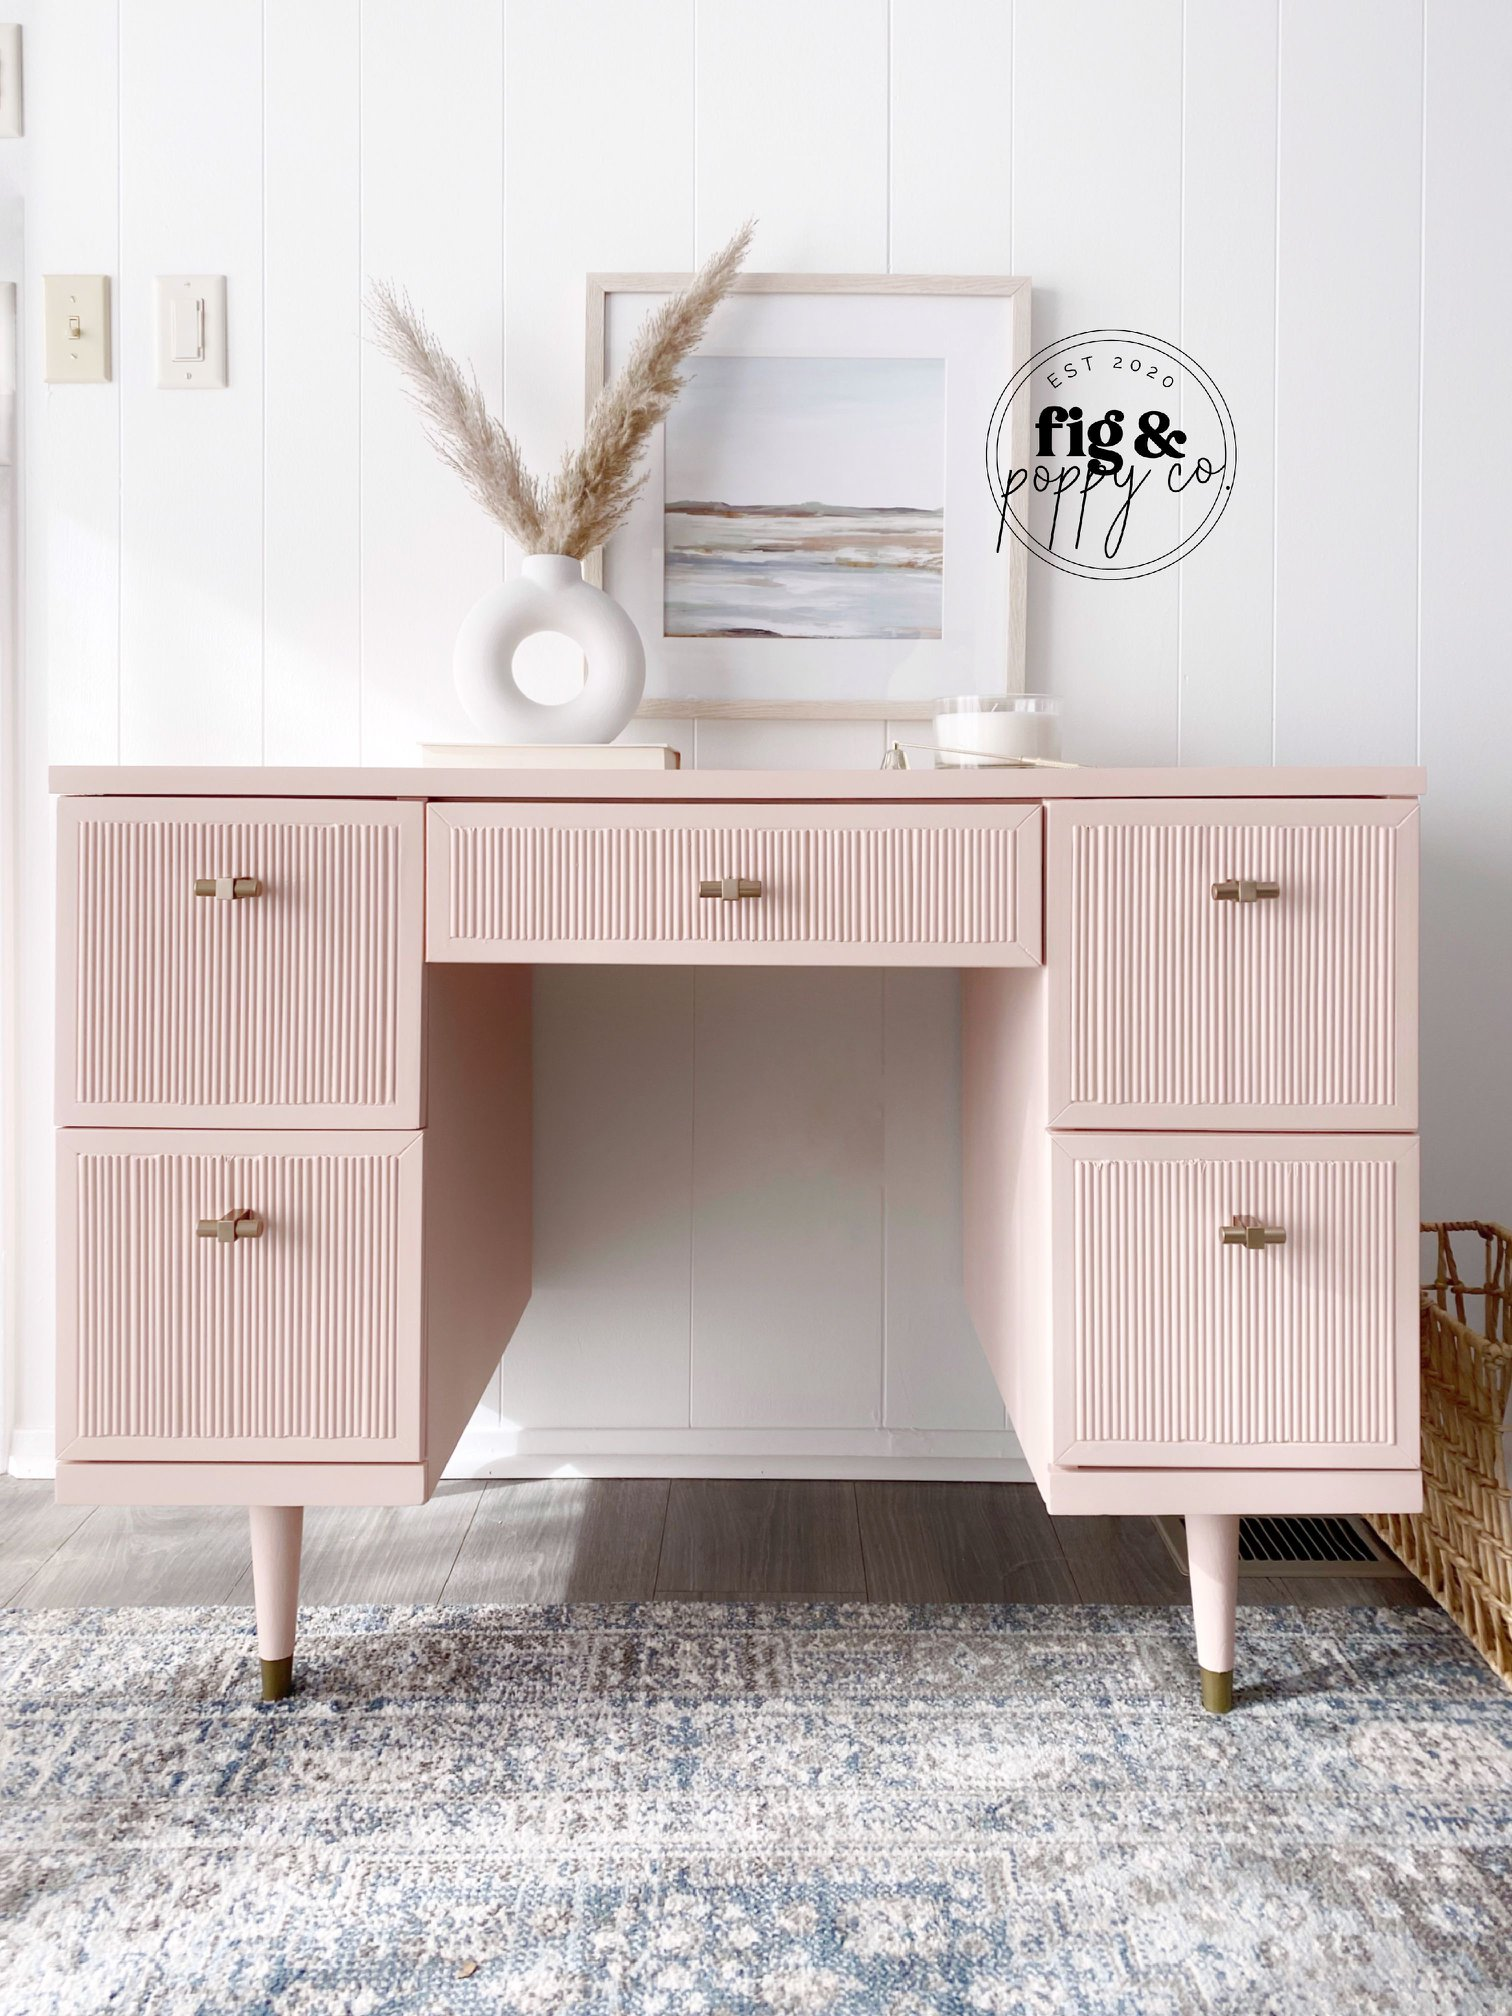 Modern Desk in Ooh La La with Gold Accents